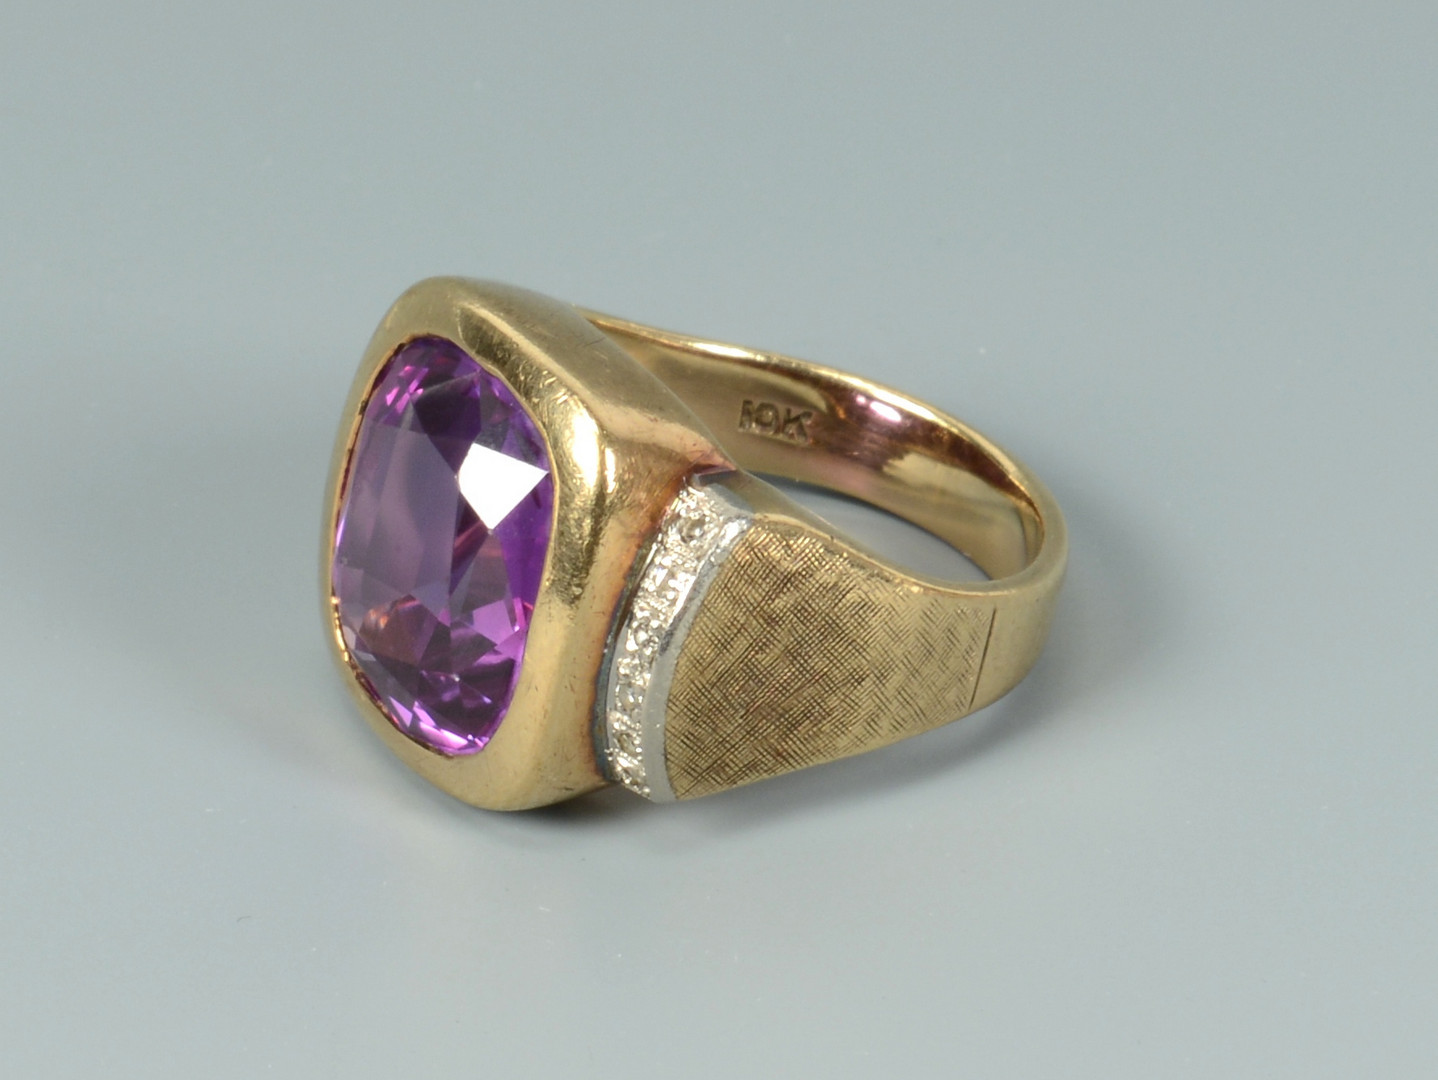 Lot 266: 3 Gold Gents Rings incl 18k